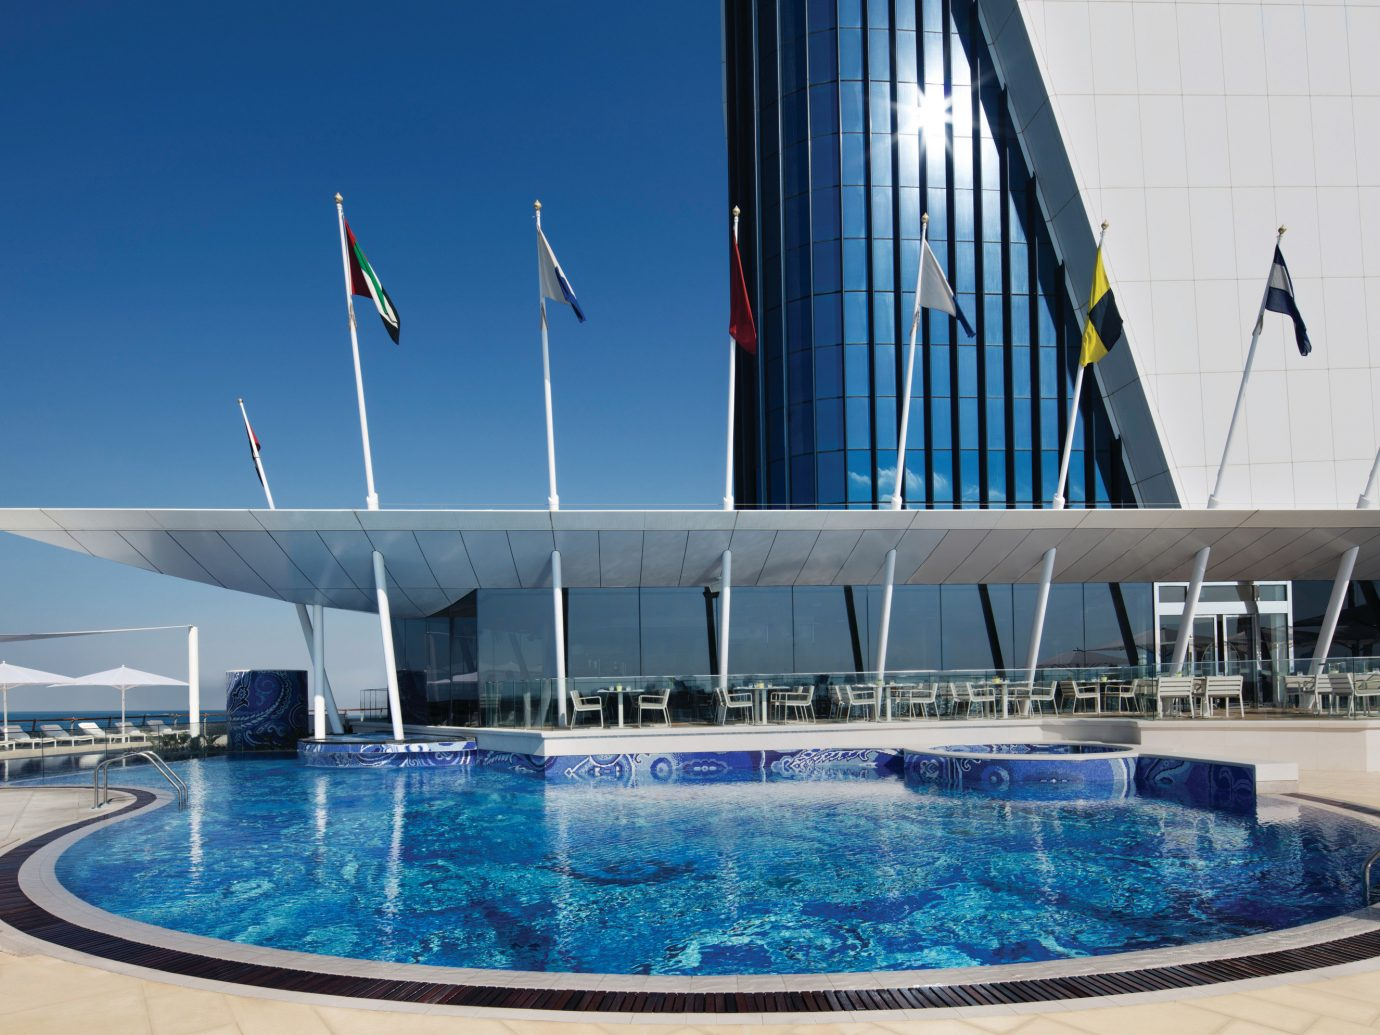 Dubai Hotels Luxury Travel Middle East swimming pool leisure water leisure centre condominium hotel building corporate headquarters Resort water feature vacation